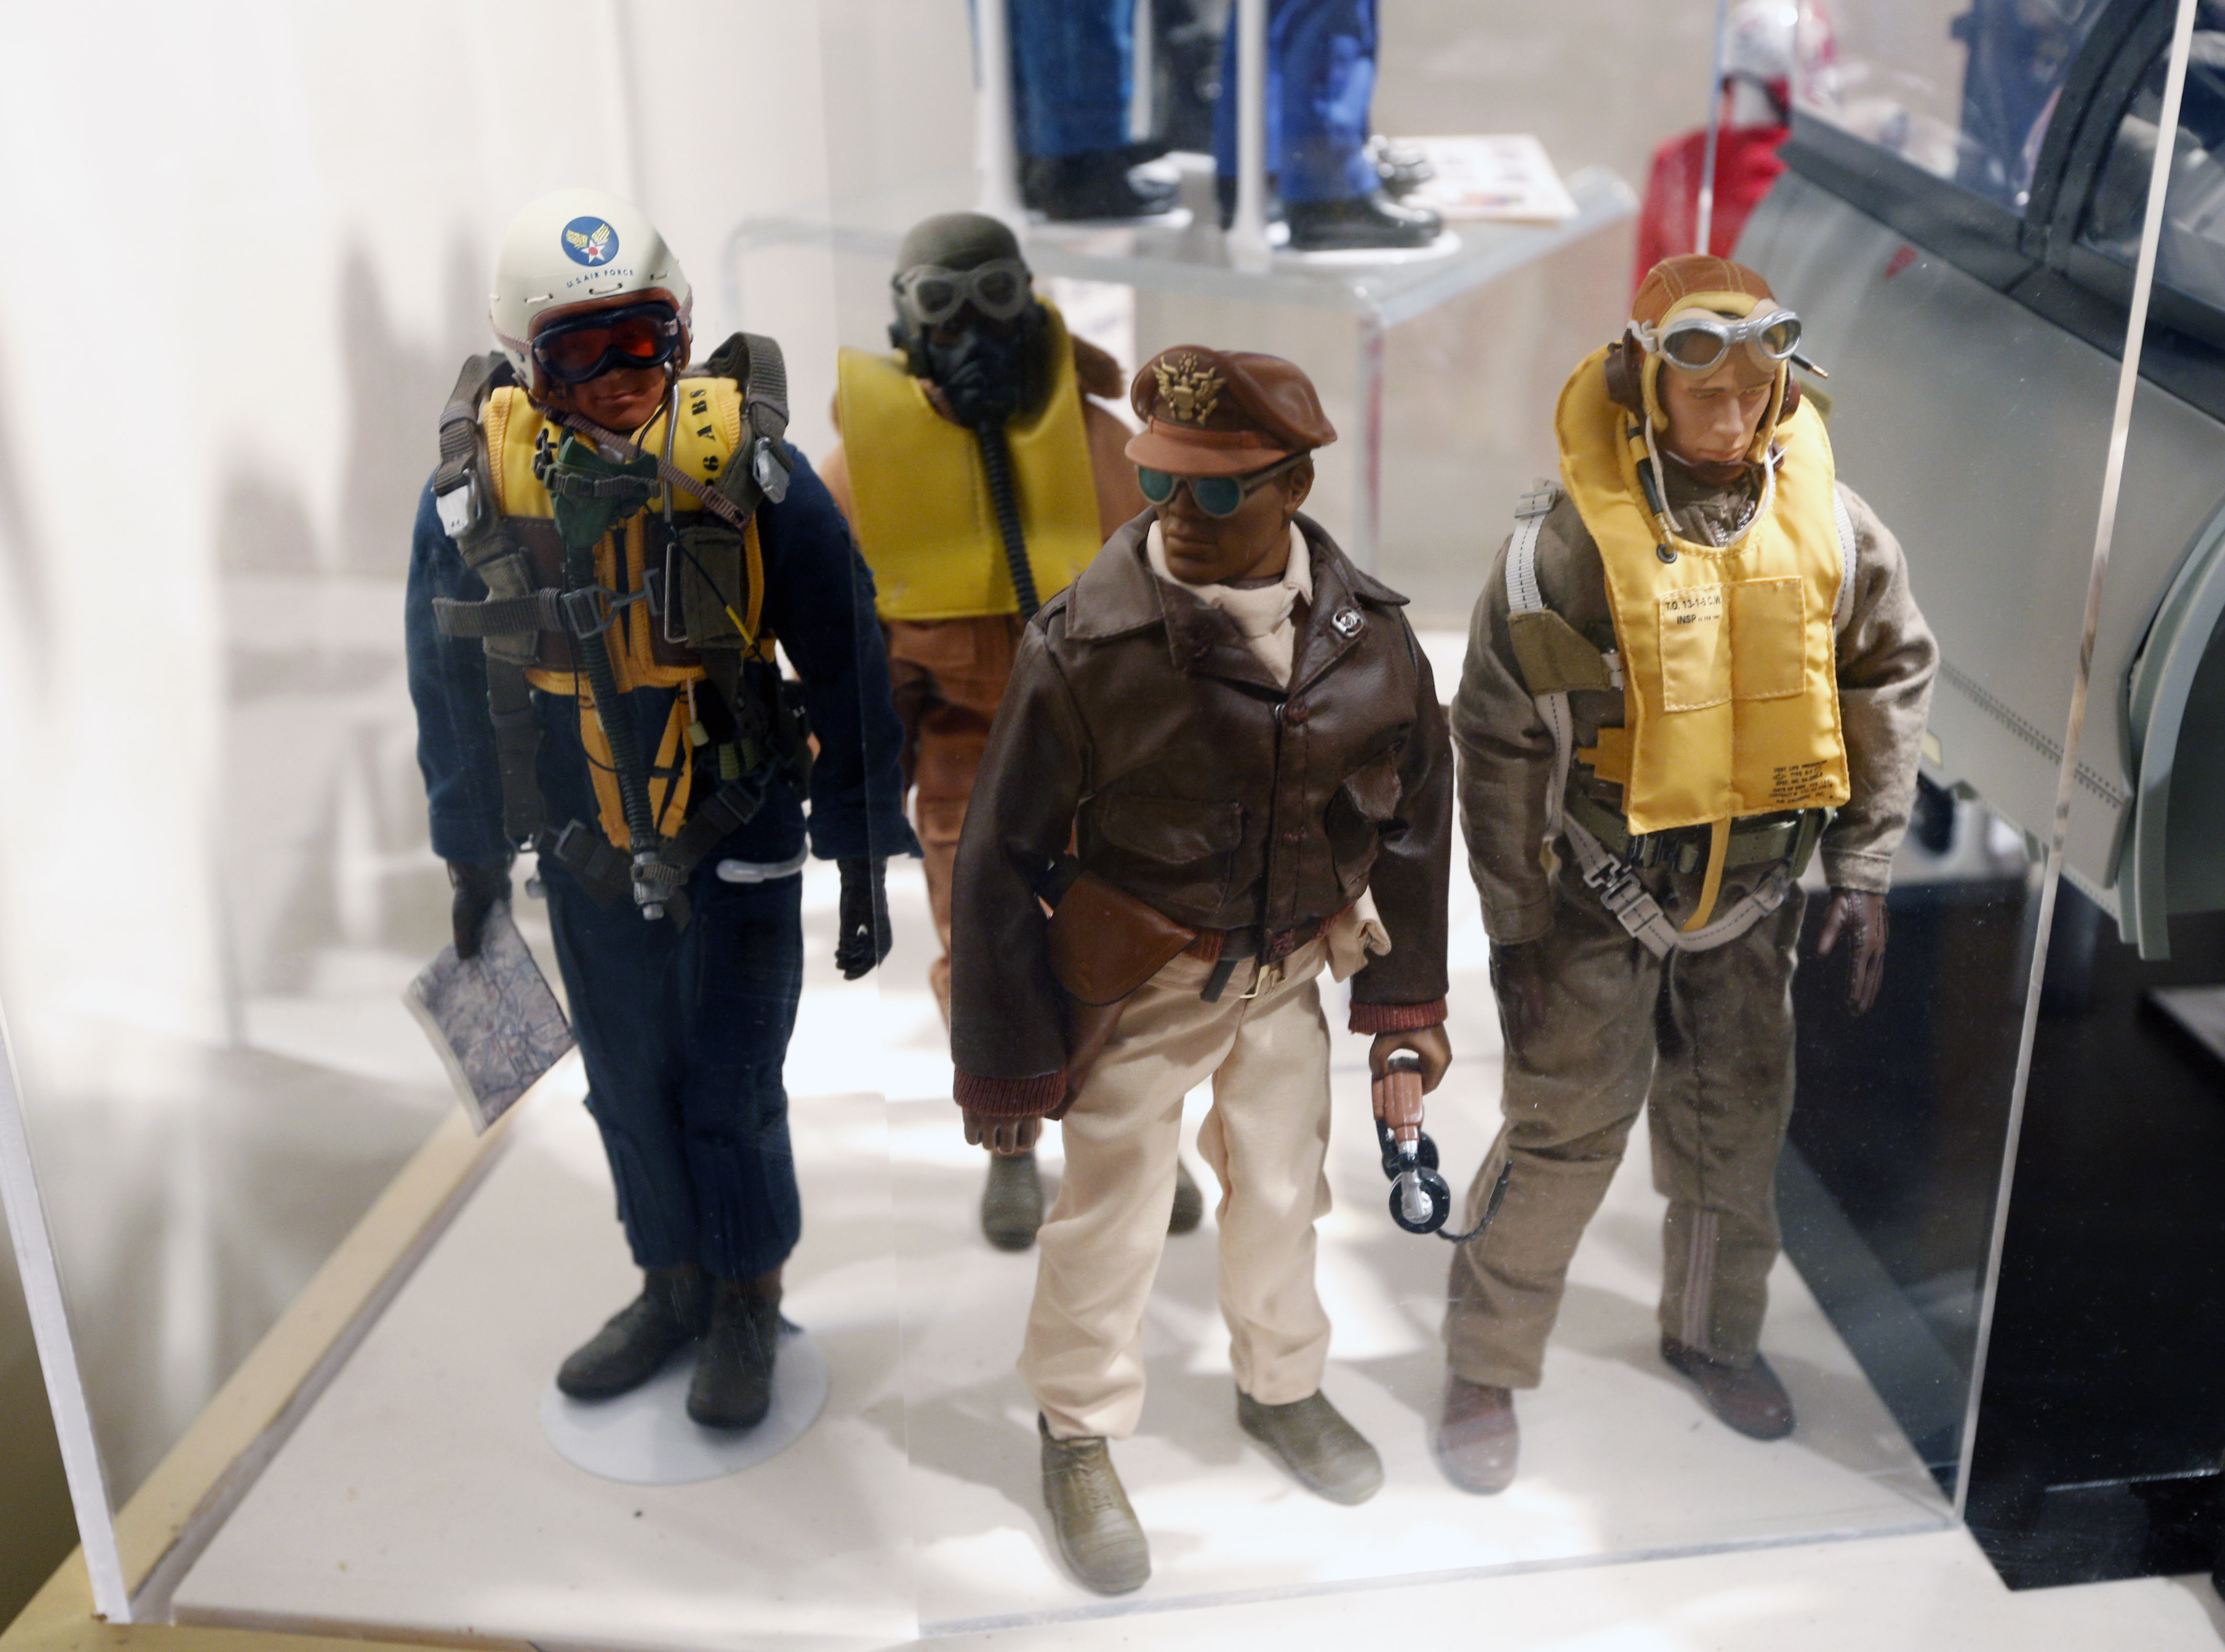 This Jan. 31, 2014 photo shows Tuskegee Airmen G.I. Joe action figures in a display at the New York State Military Museum in Saratoga Springs, N.Y. A half-century after the 12-inch doll was introduced at a New York City toy fair, the iconic action figure is being celebrated by collectors with a display at the military museum, while the toy's maker plans other anniversary events to be announced later this month. (AP Photo/Mike Groll)